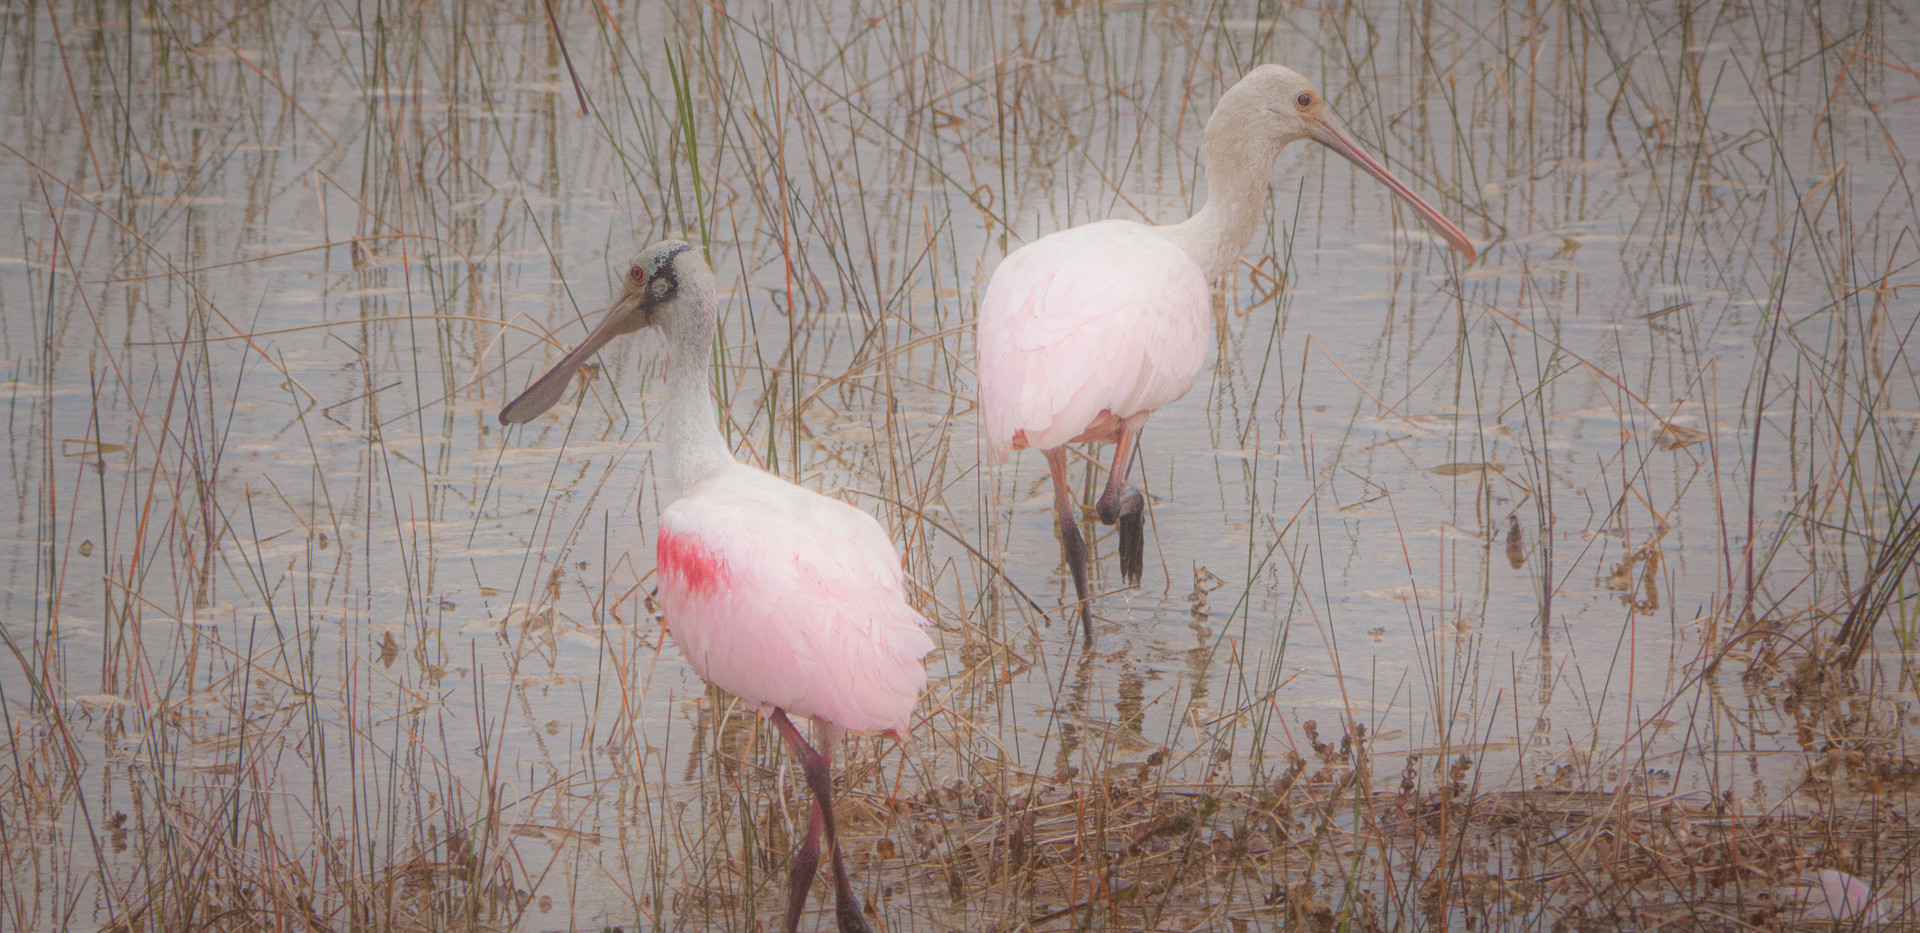 2nd: Roseate Spoonbills On The Move